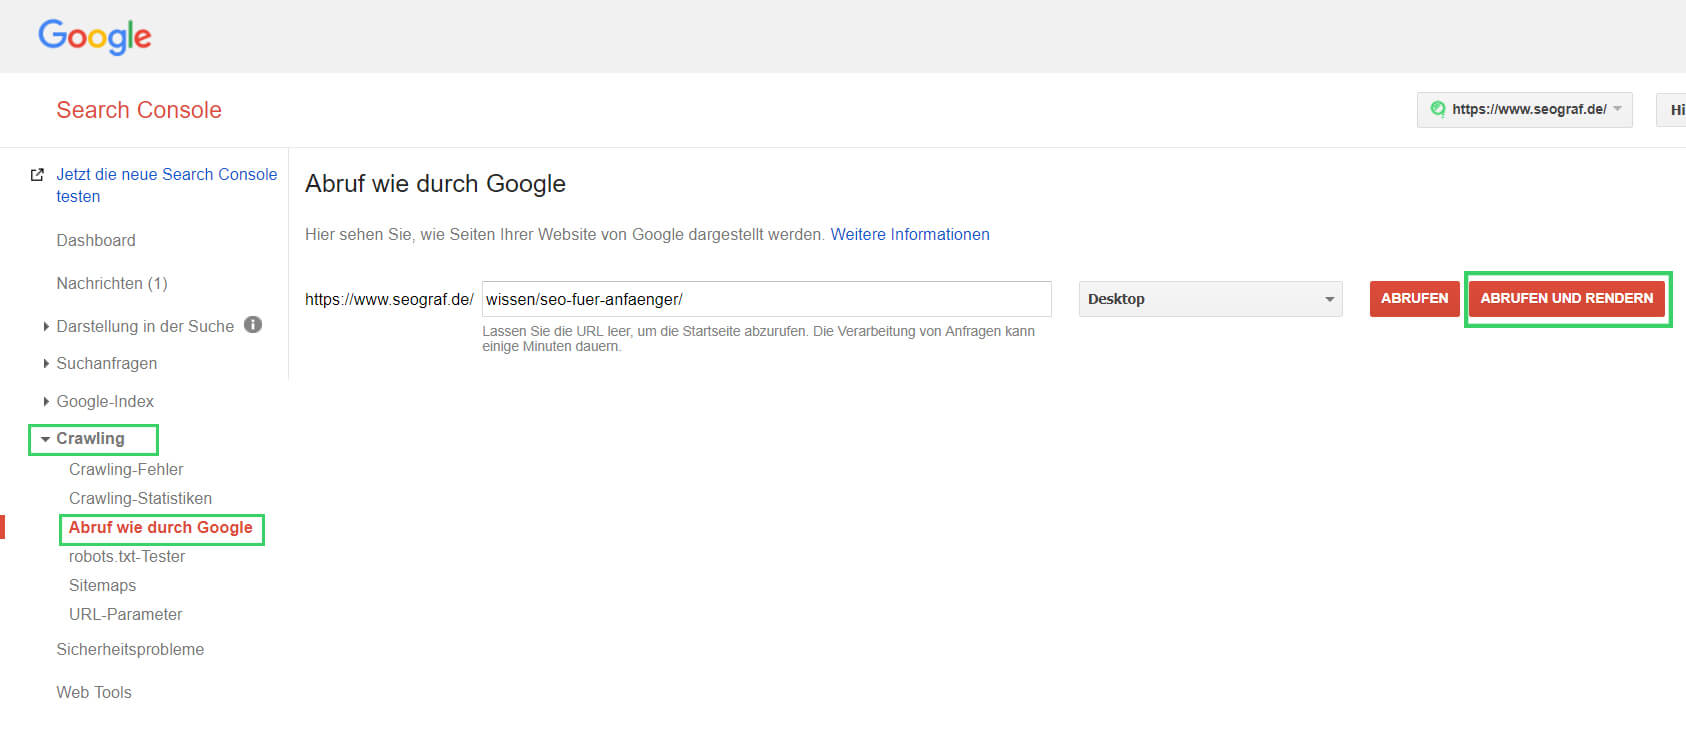 Screenshot Abruf-wie-durch-Google